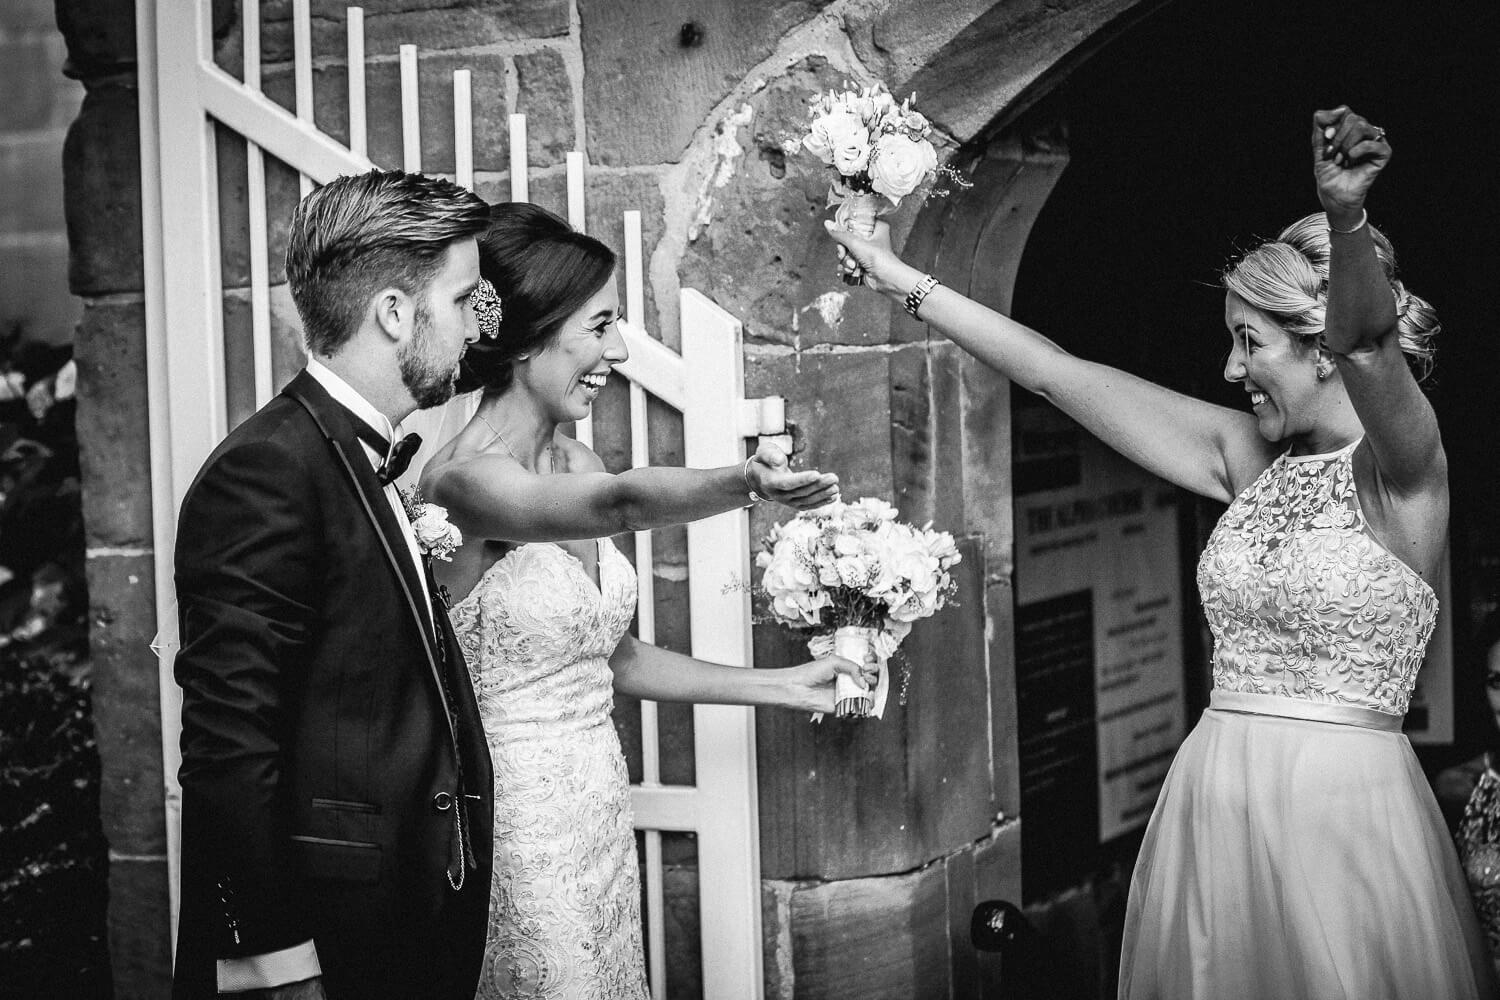 Excited bridesmaid congratulating bride and groom All saints church Liverpool